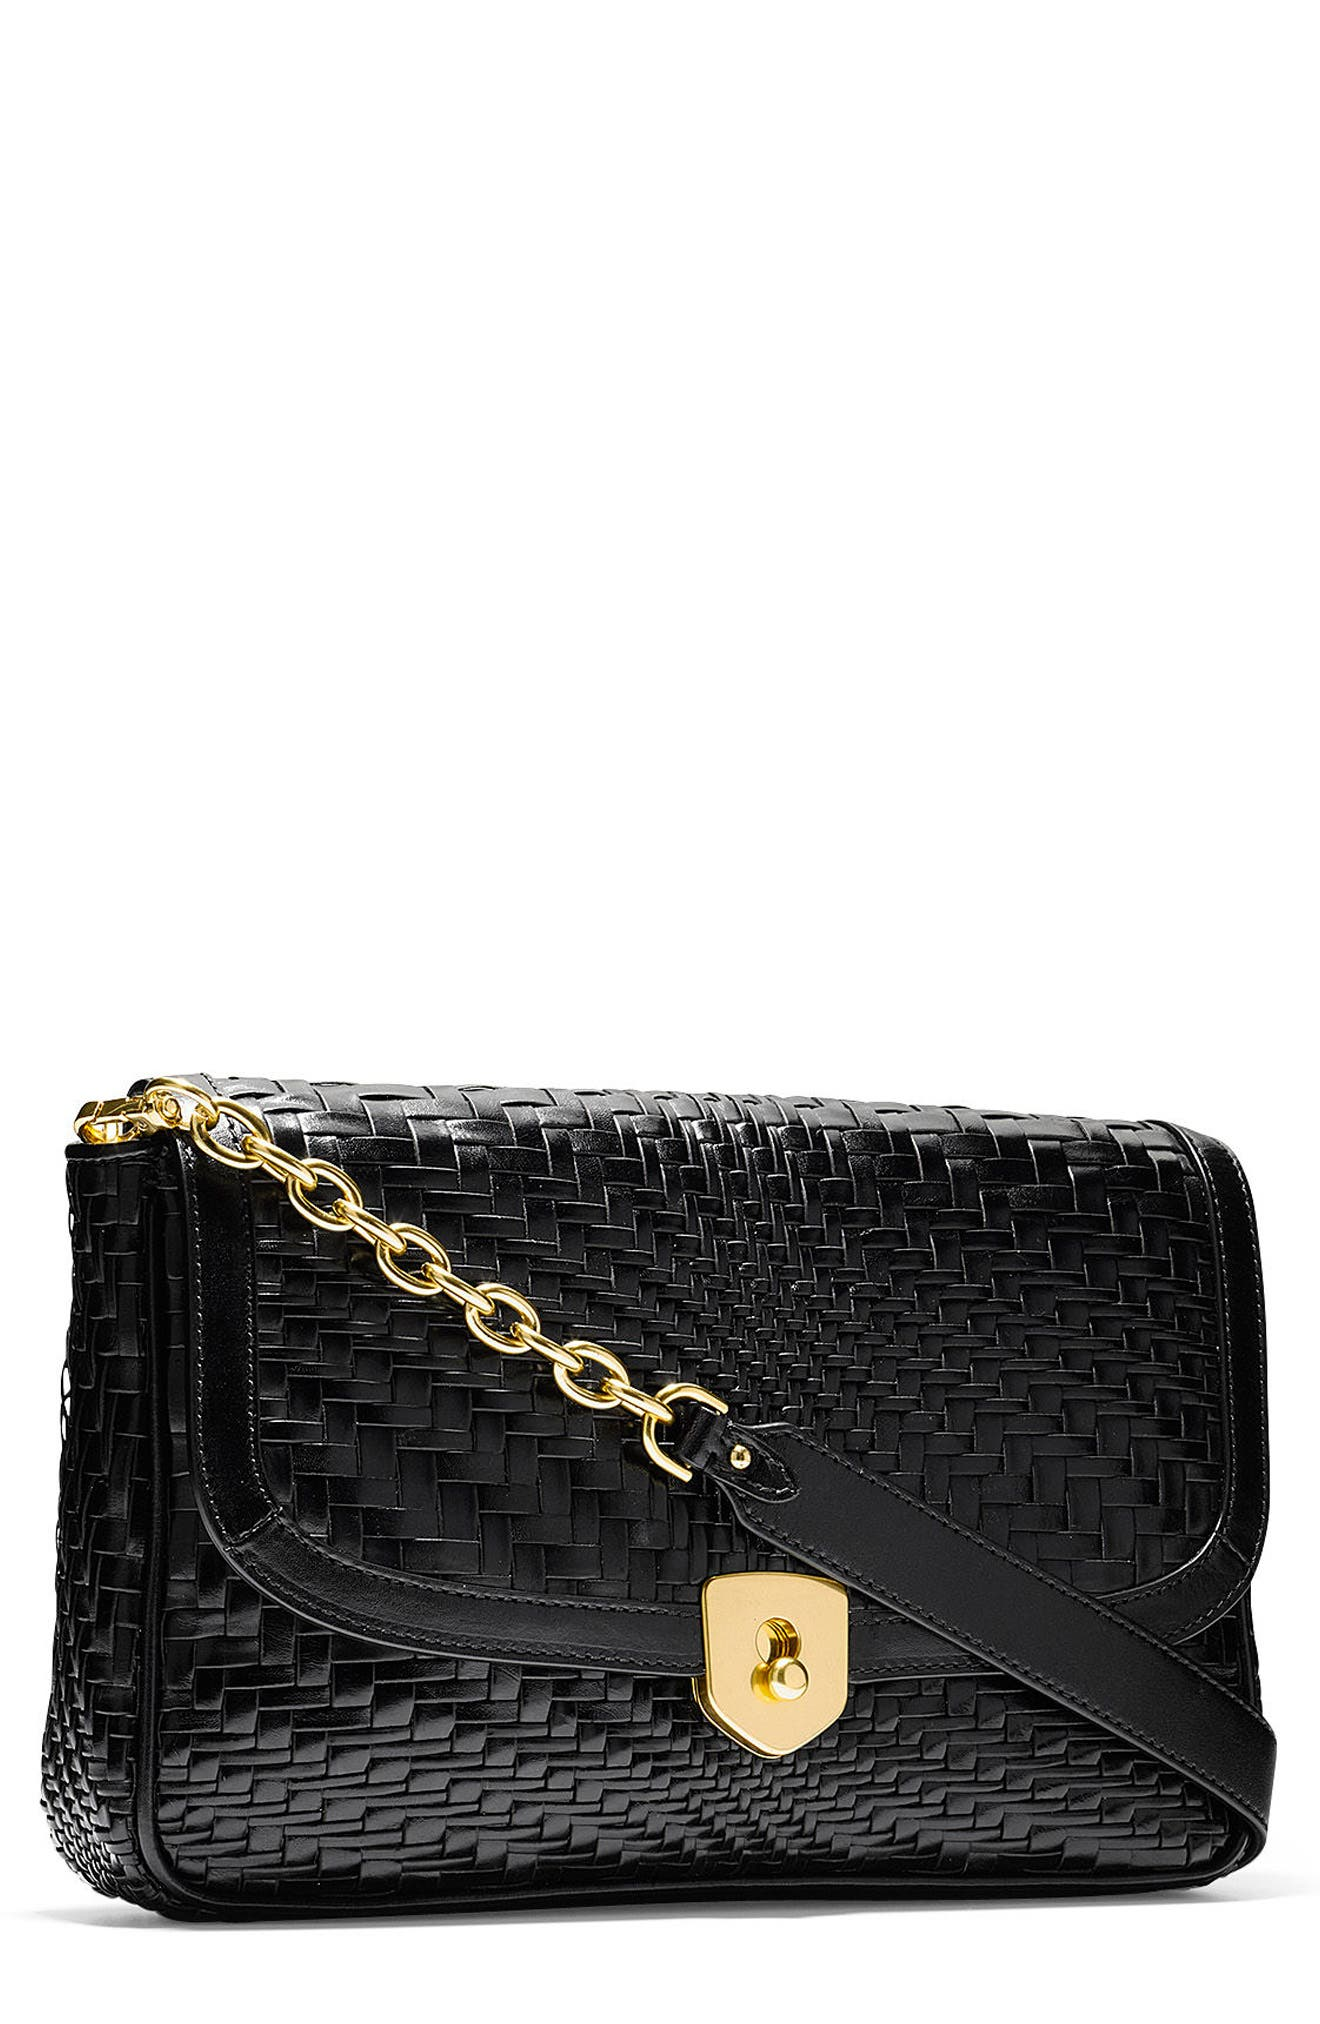 Cole Haan Genevieve Woven Leather Clutch